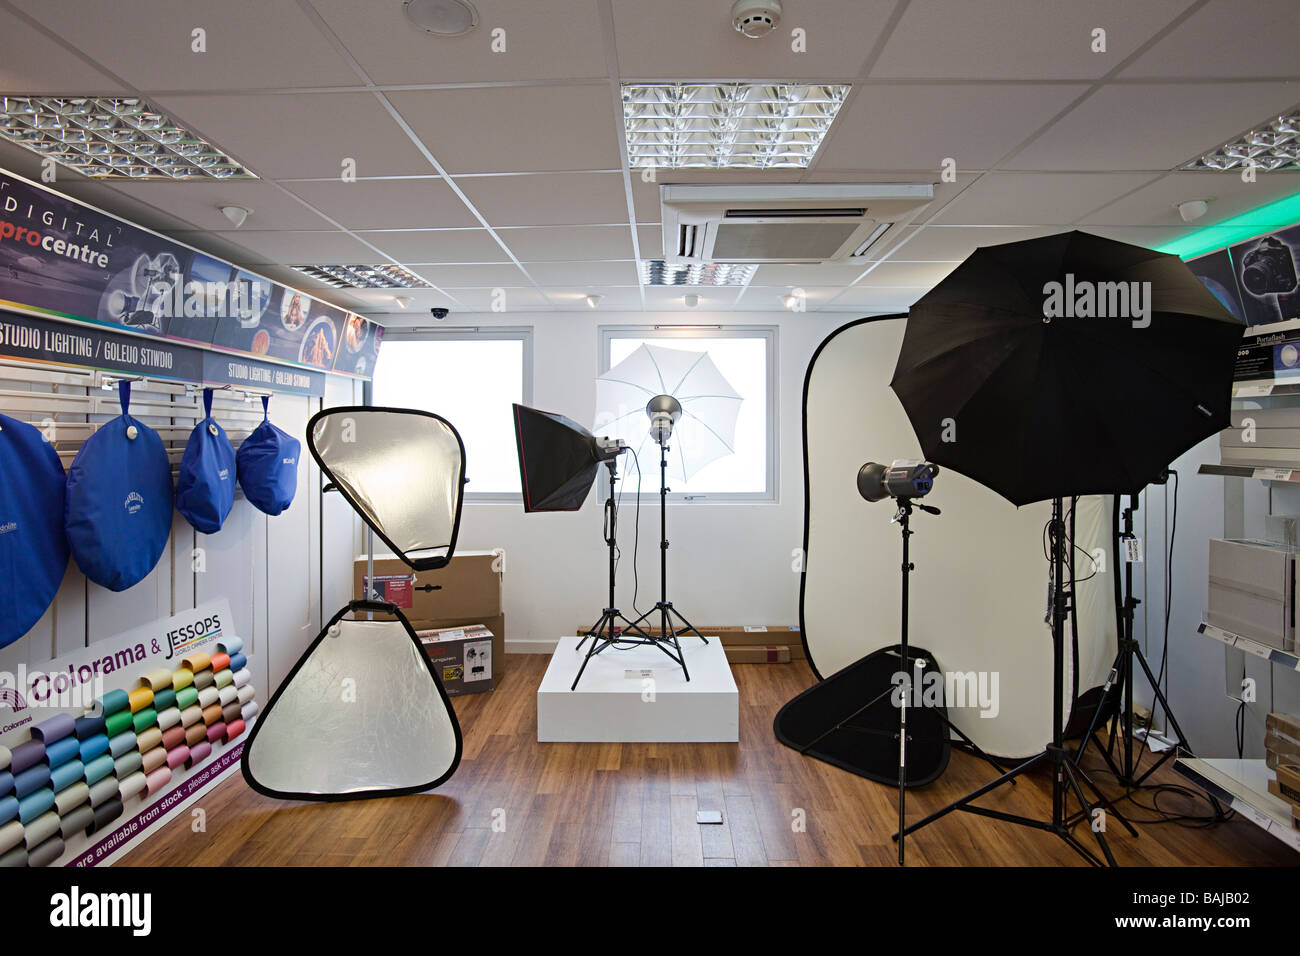 Photographic studio flash equipment on sale in camera shop UK - Stock Image